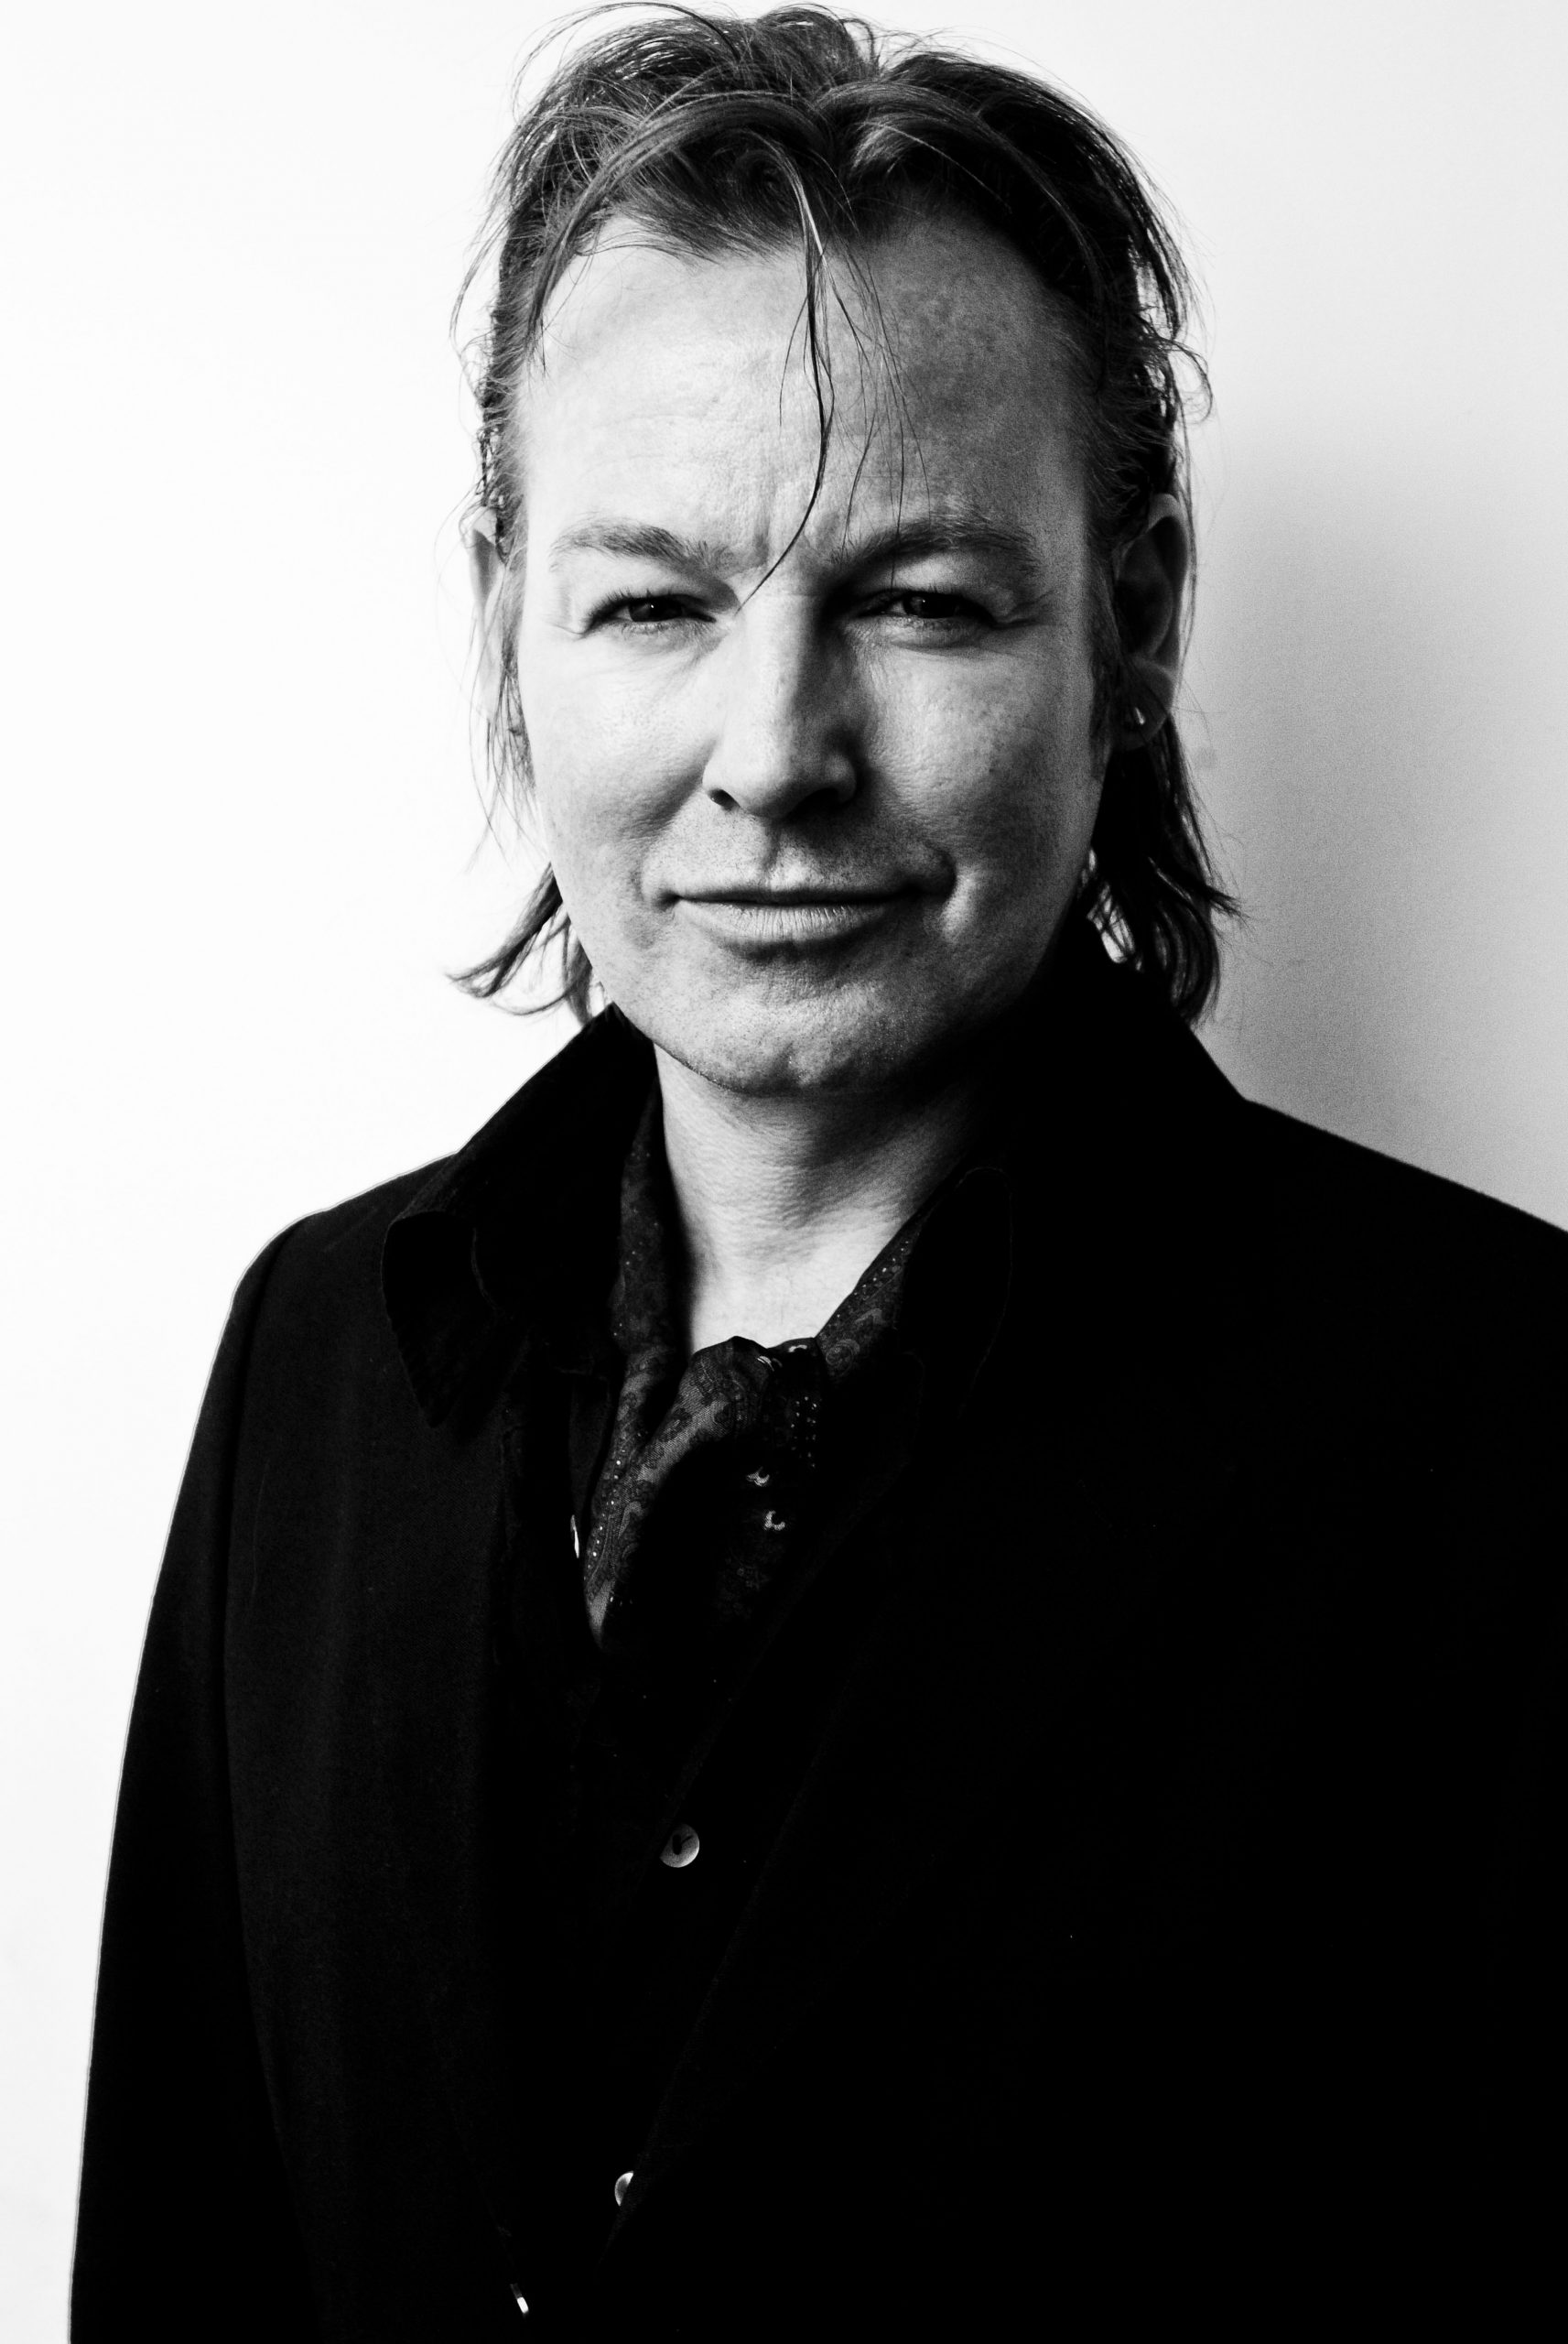 Then Jerico frontman